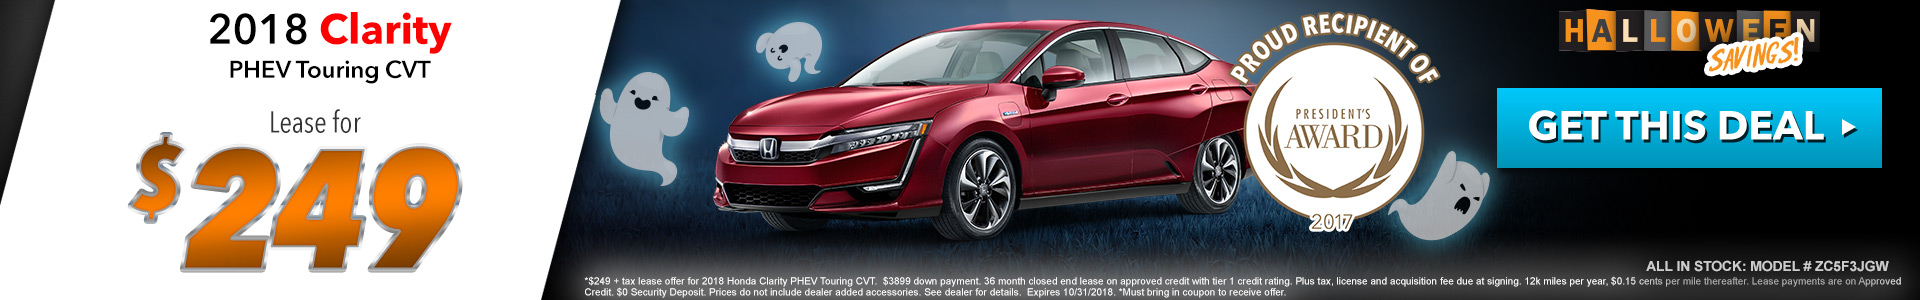 Honda Clarity $249 Lease